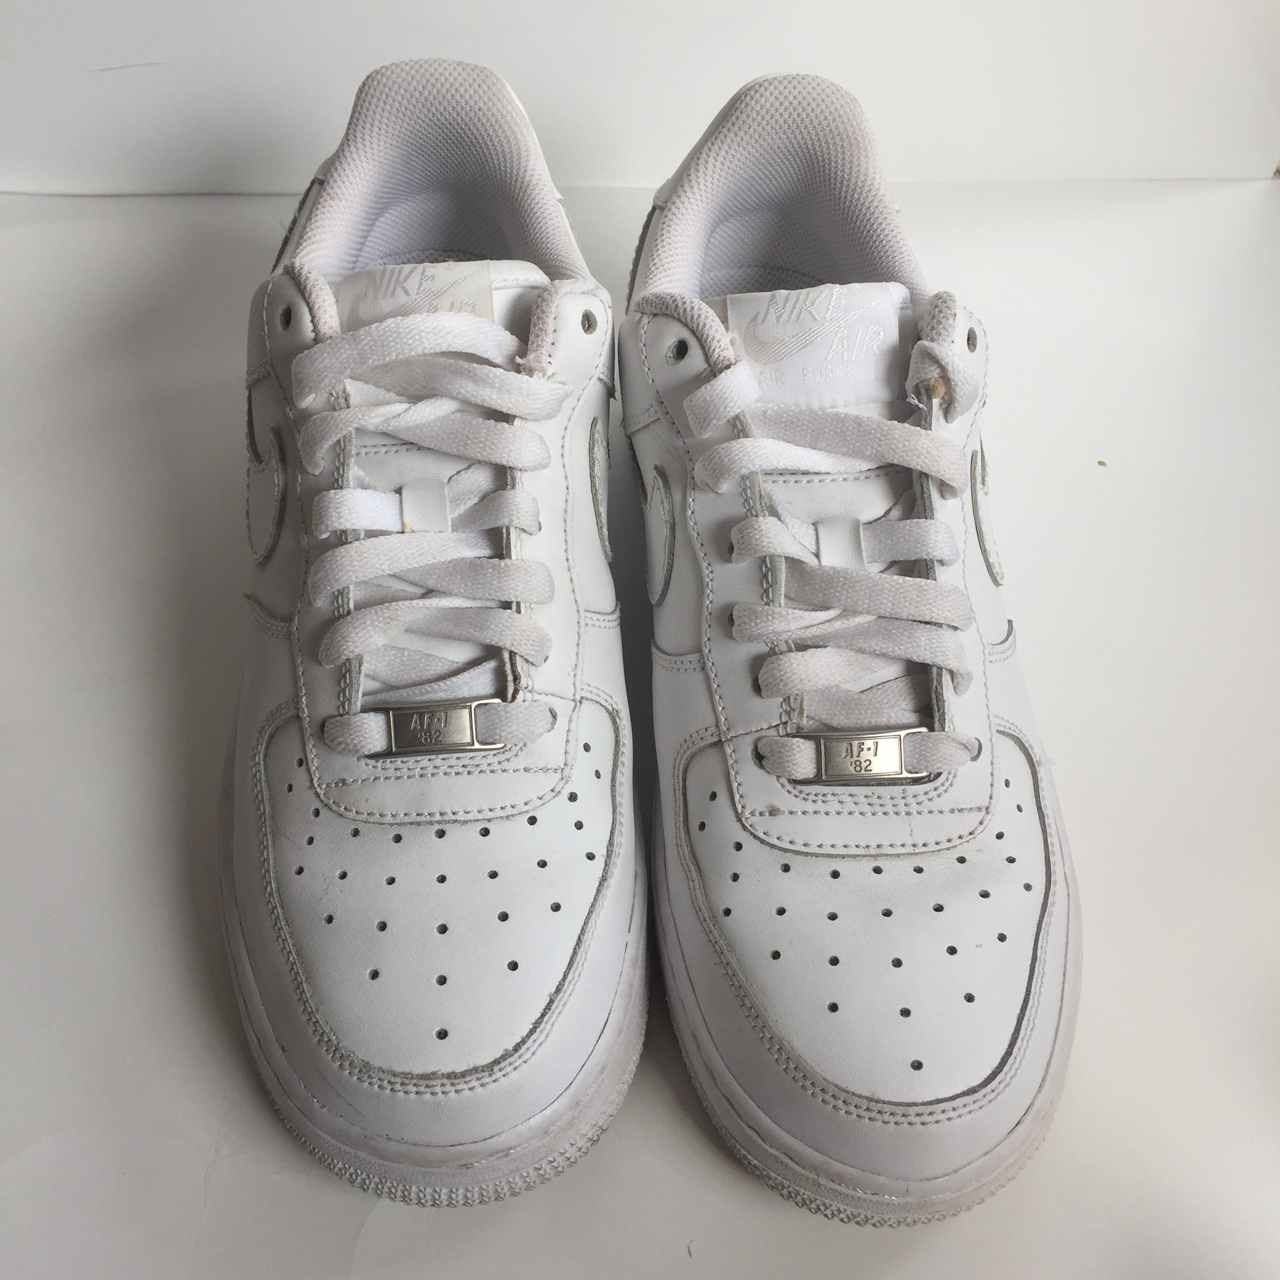 Nike Air Force 1 Size 6 Youth Us 7 5 Women S Depop